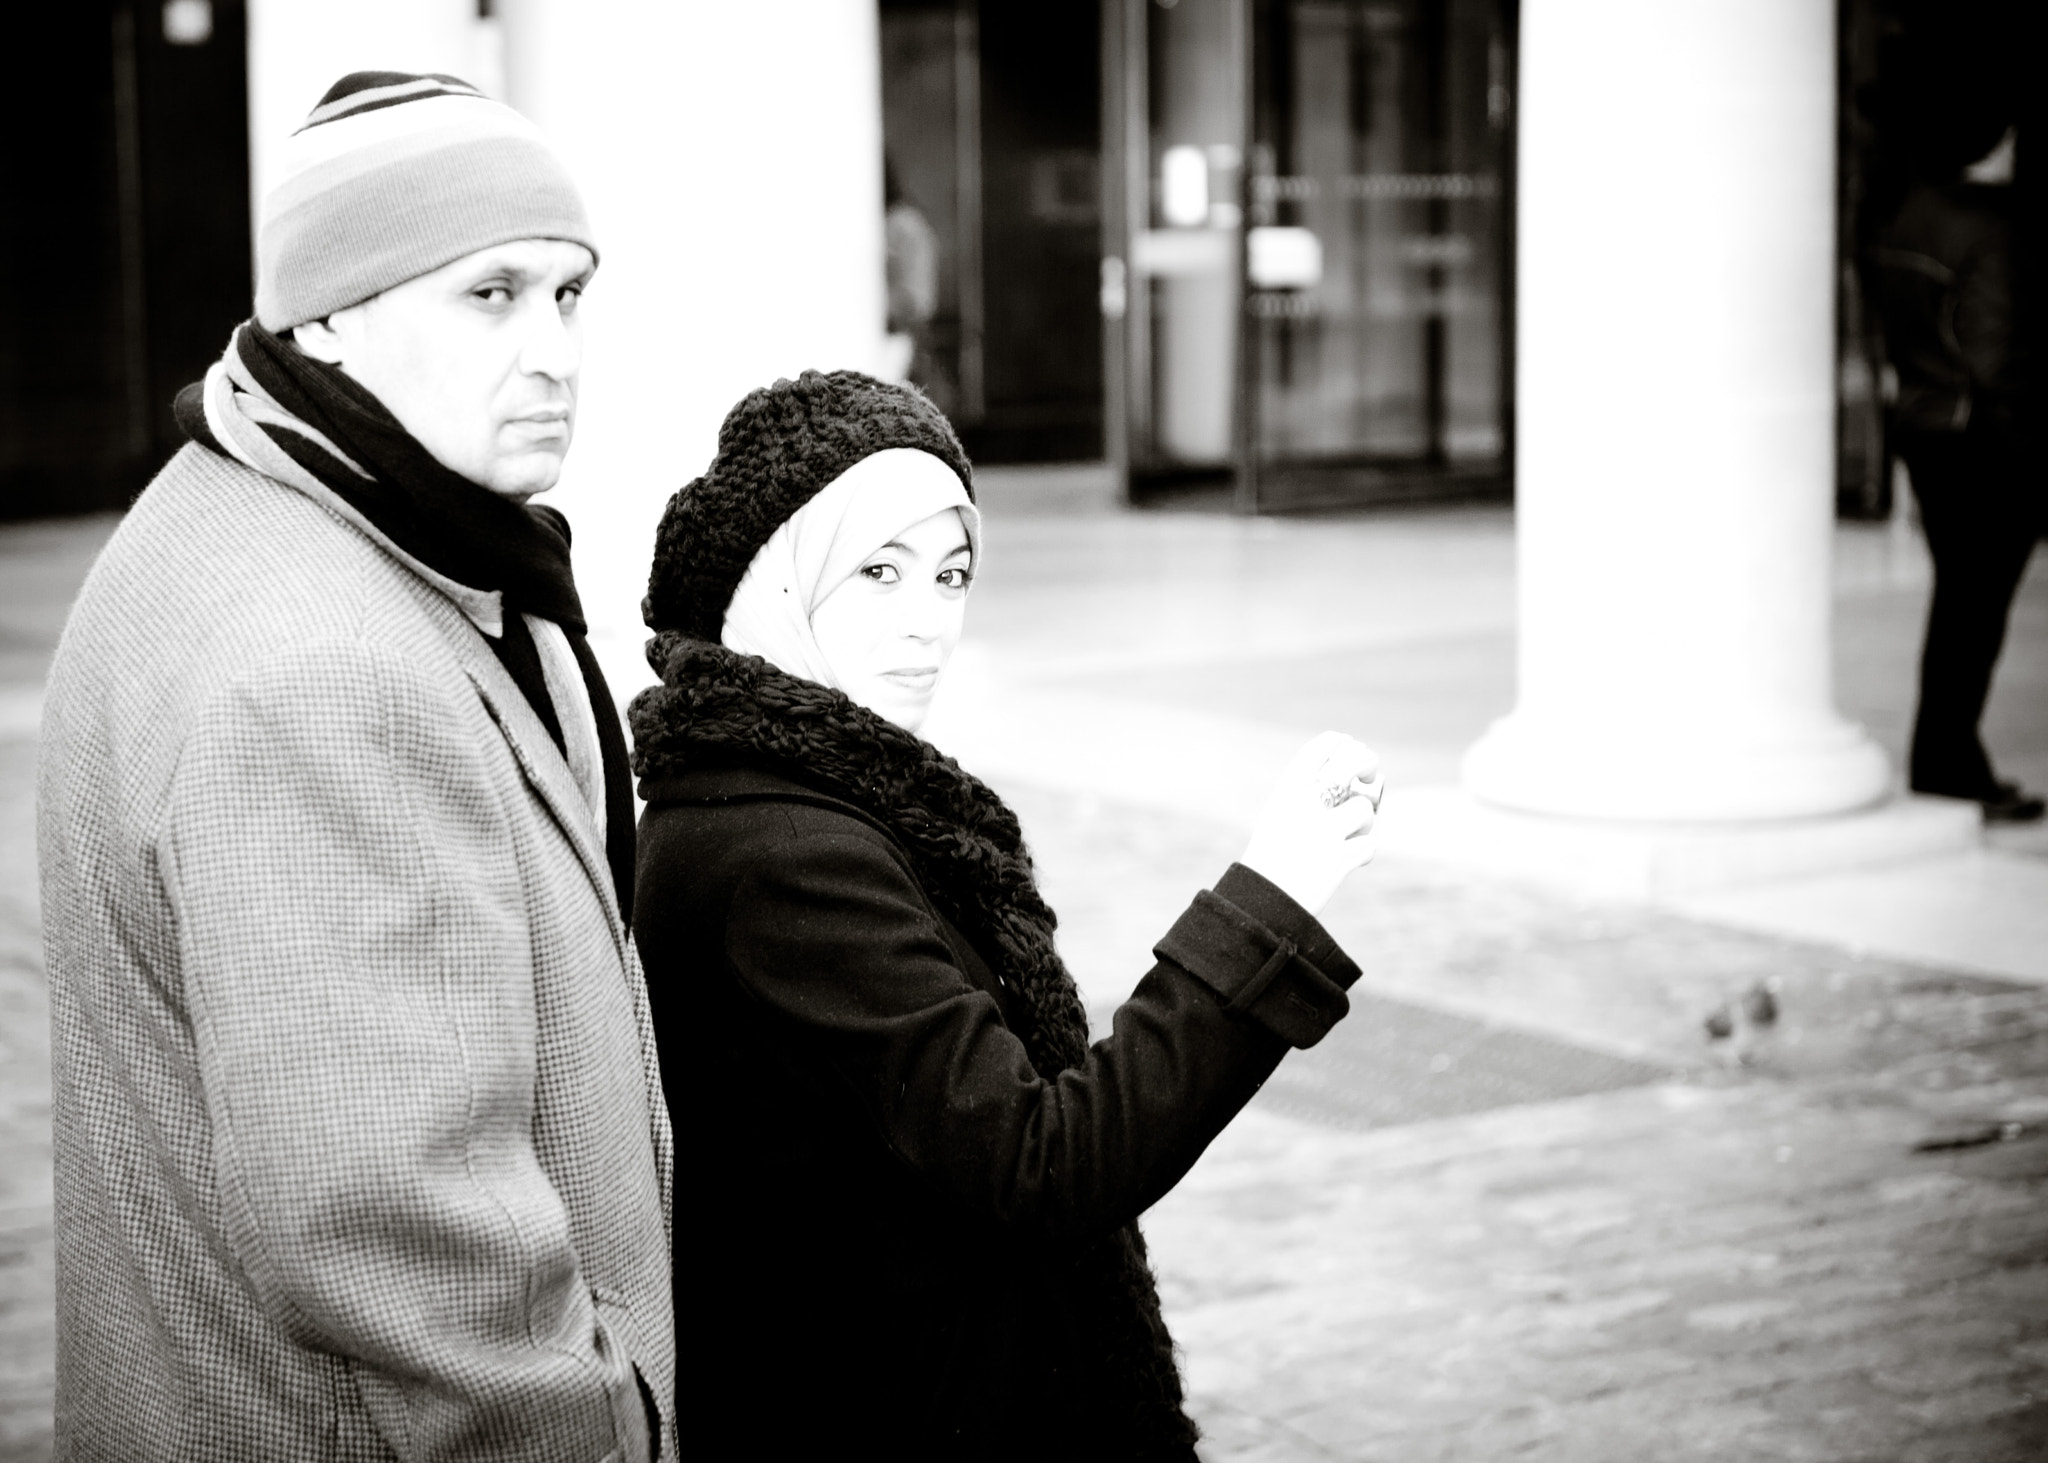 Photograph couple in winter by Pavlo Milan on 500px